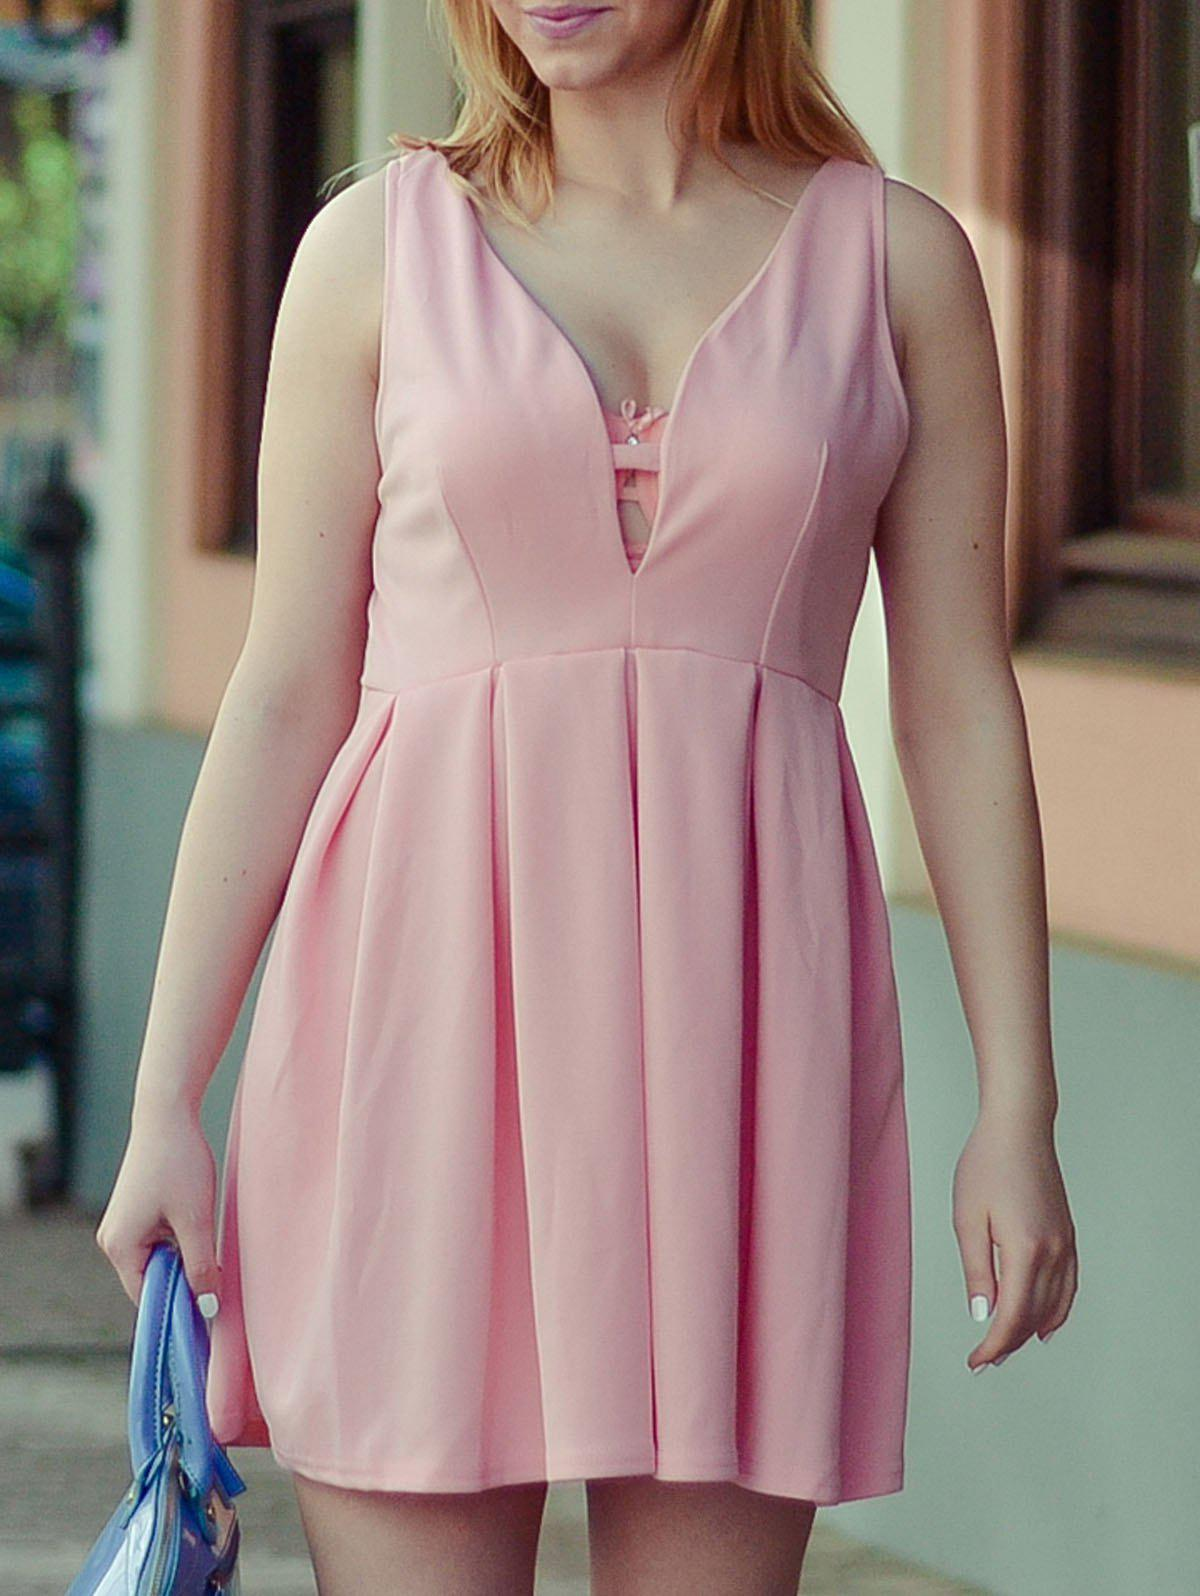 Outfit Fashion Plunging Neck Sleeveless Solid Color Zippered Women's Dress